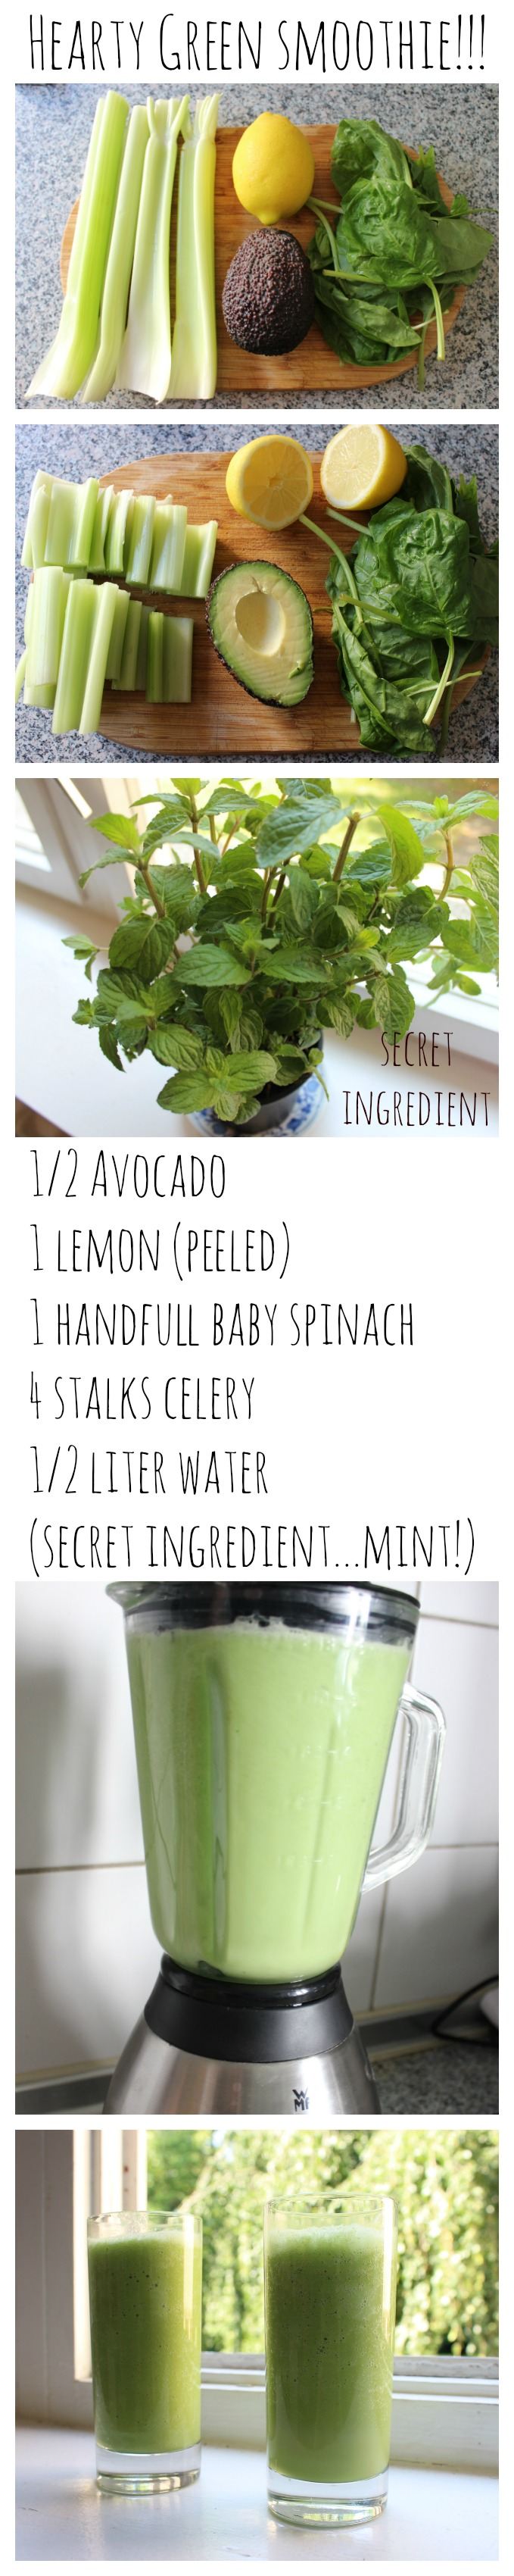 hearty green smoothie